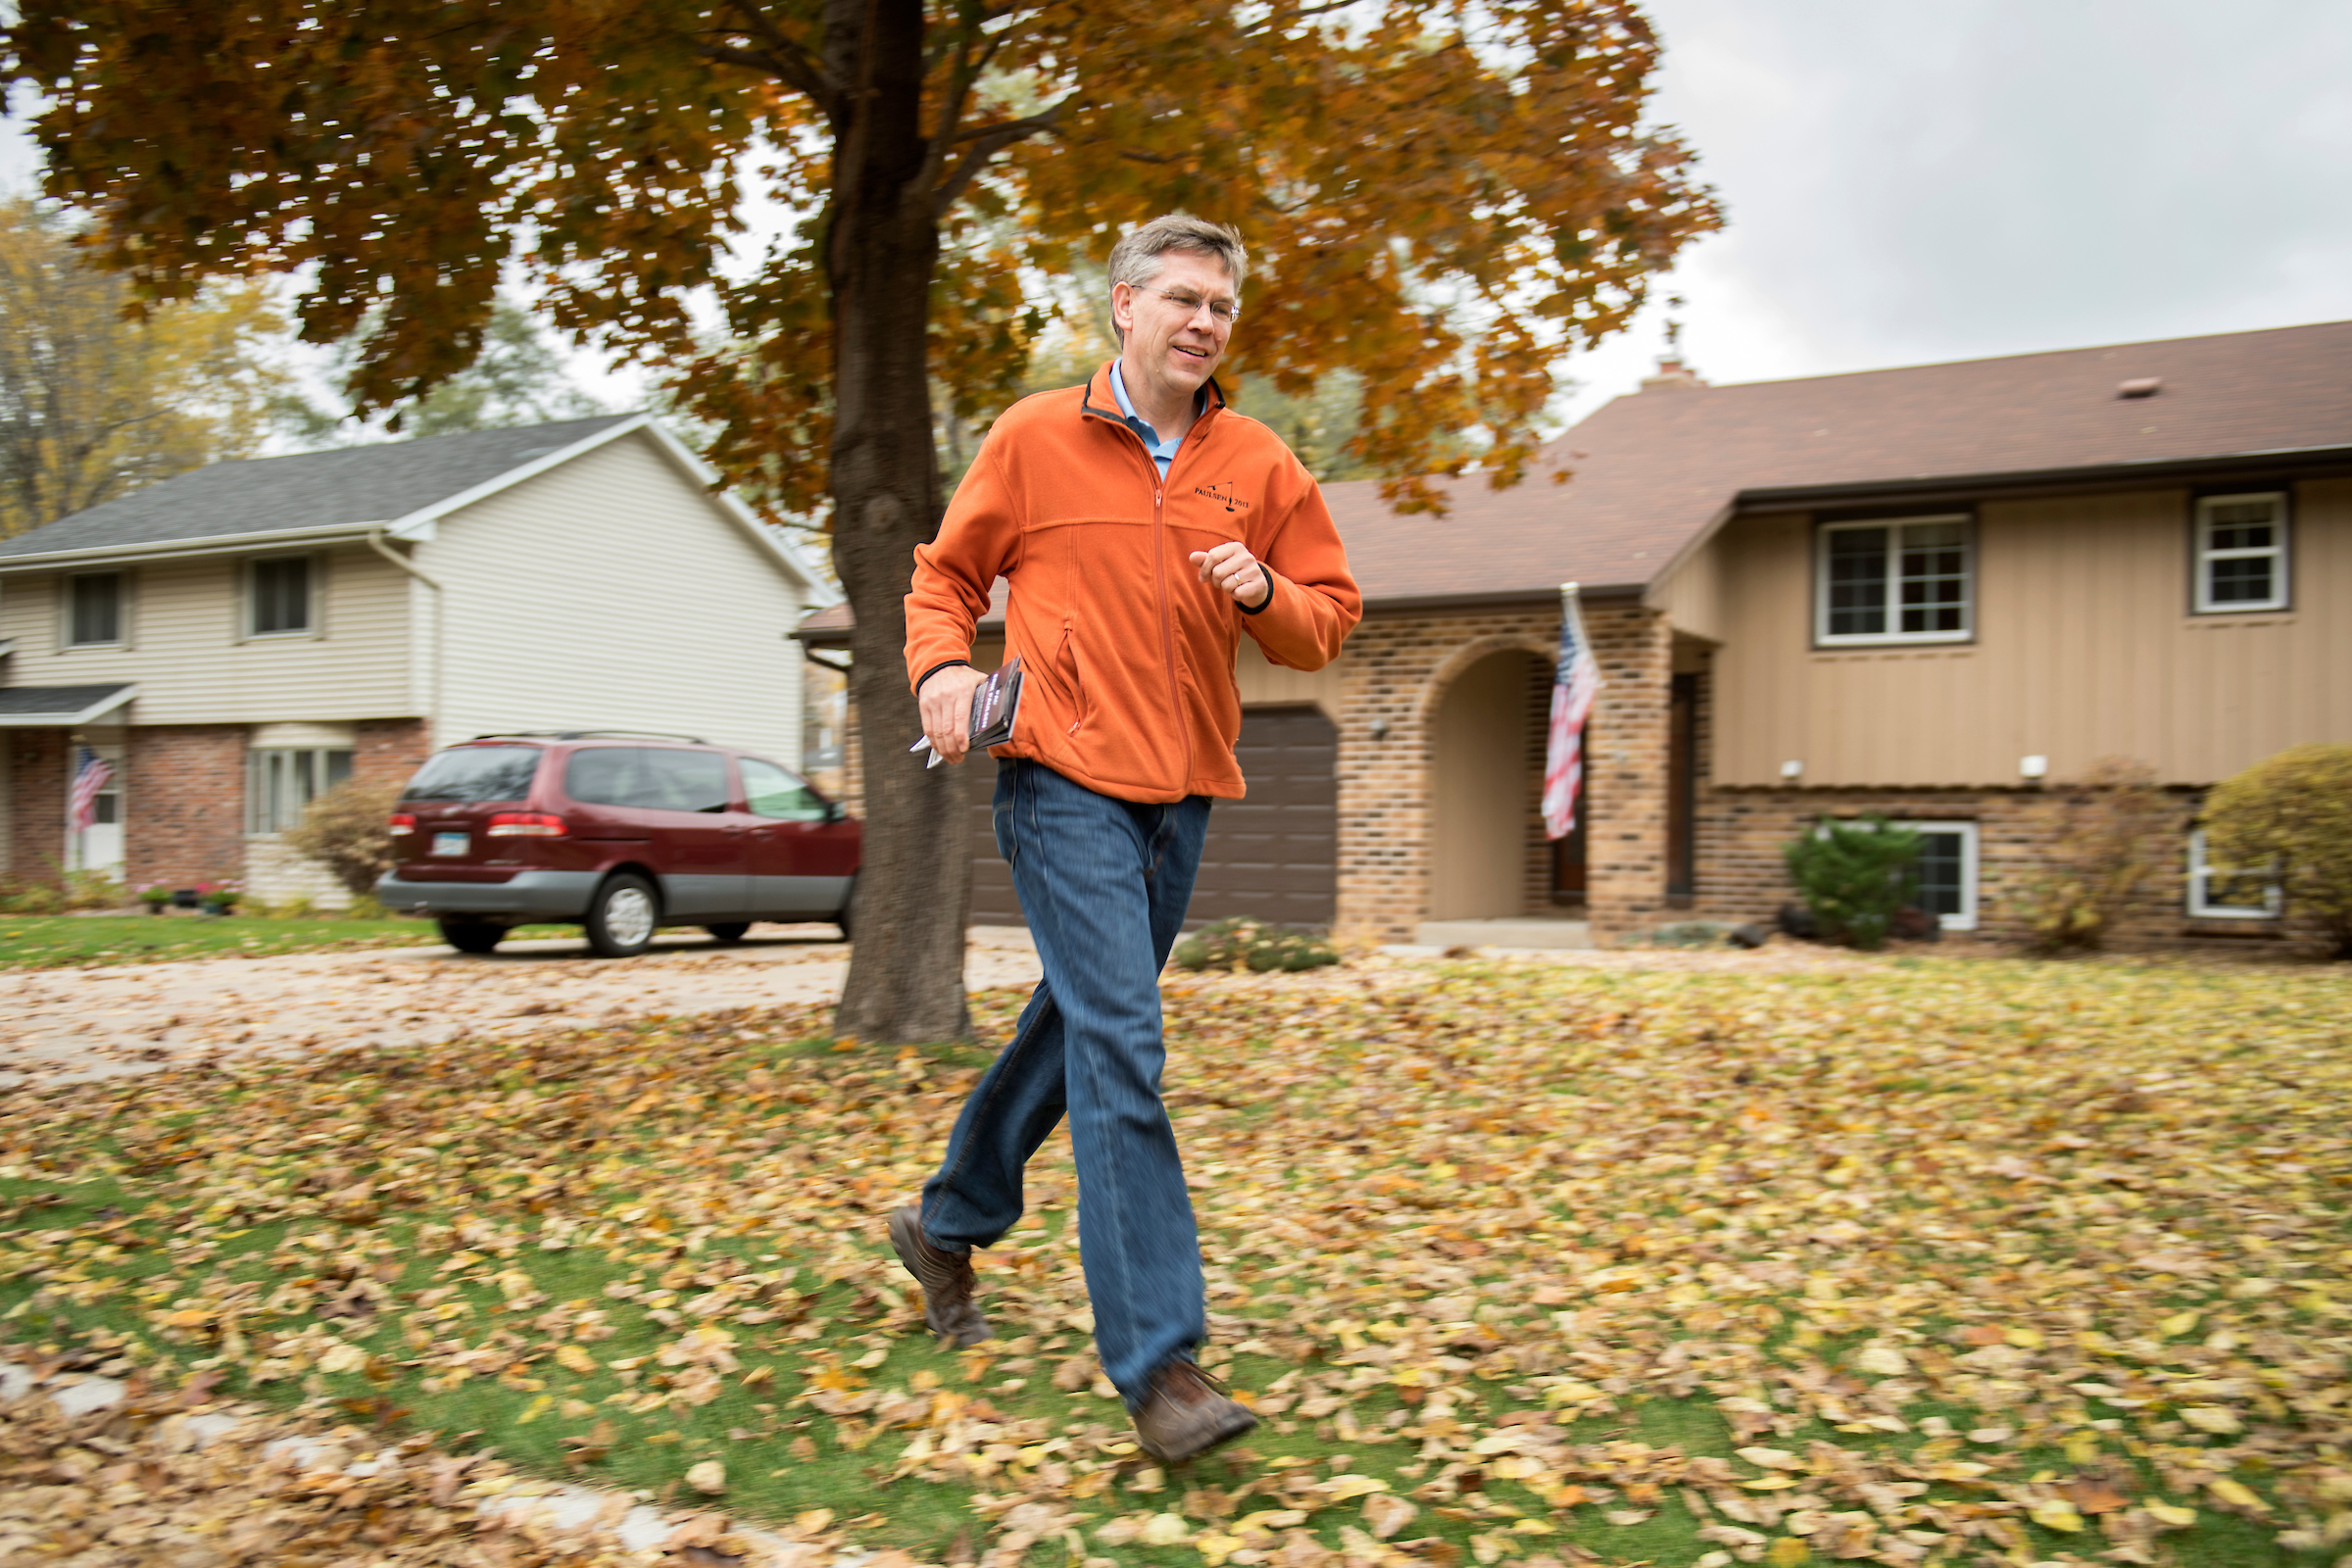 UNITED STATES - OCTOBER 29: Rep. Erik Paulsen, R-Minn., door knocks in Coon Rapids, MN, October 29, 2016. Paulsen is running for reelection in Minnesota's 3rd Congressional District. (Photo By Tom Williams/CQ Roll Call)